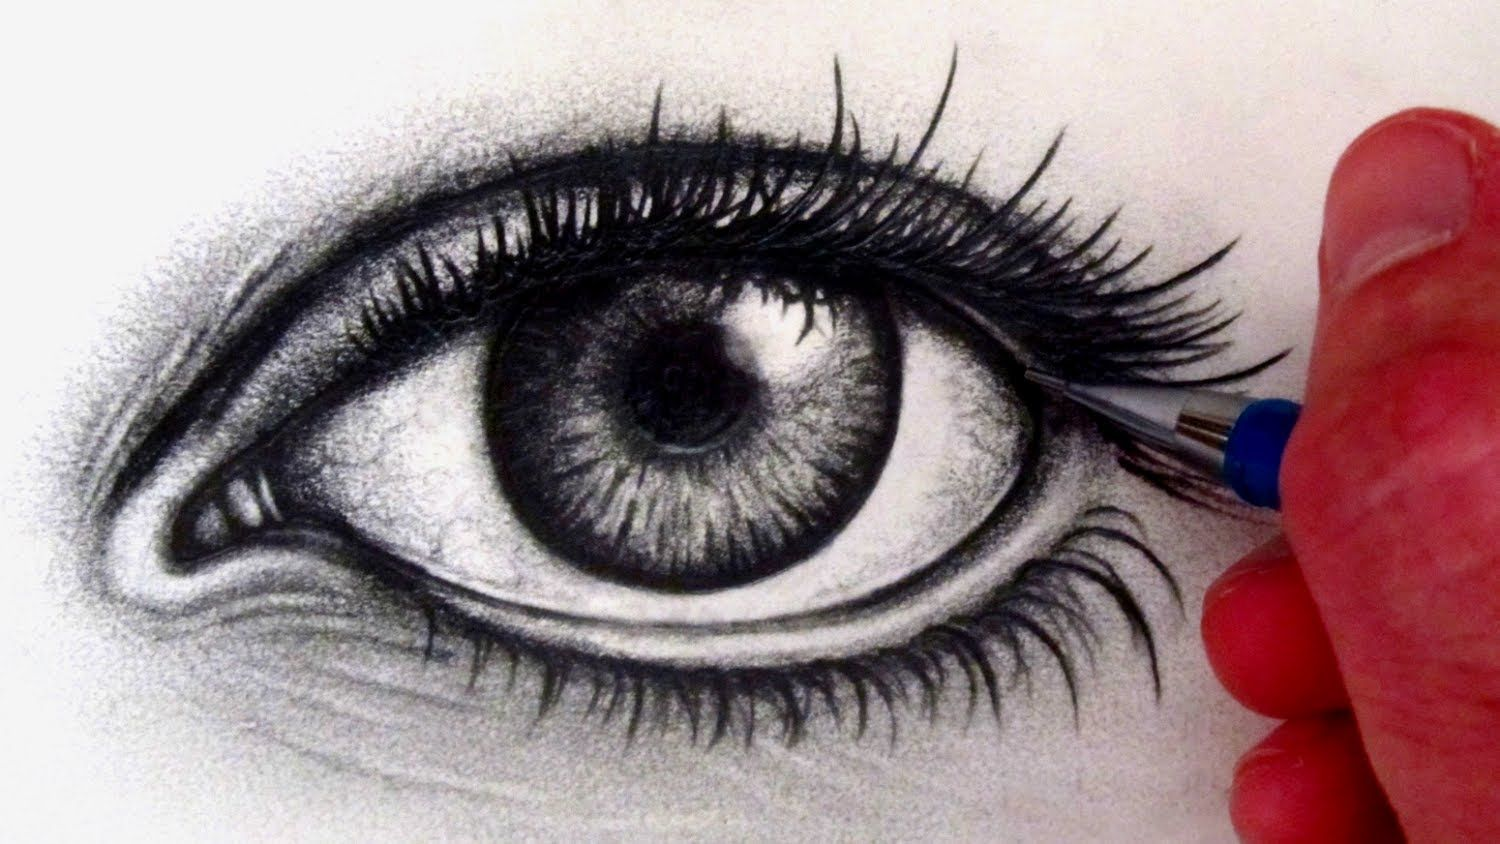 How to draw a realistic eye. Hey everyone! Here's my first